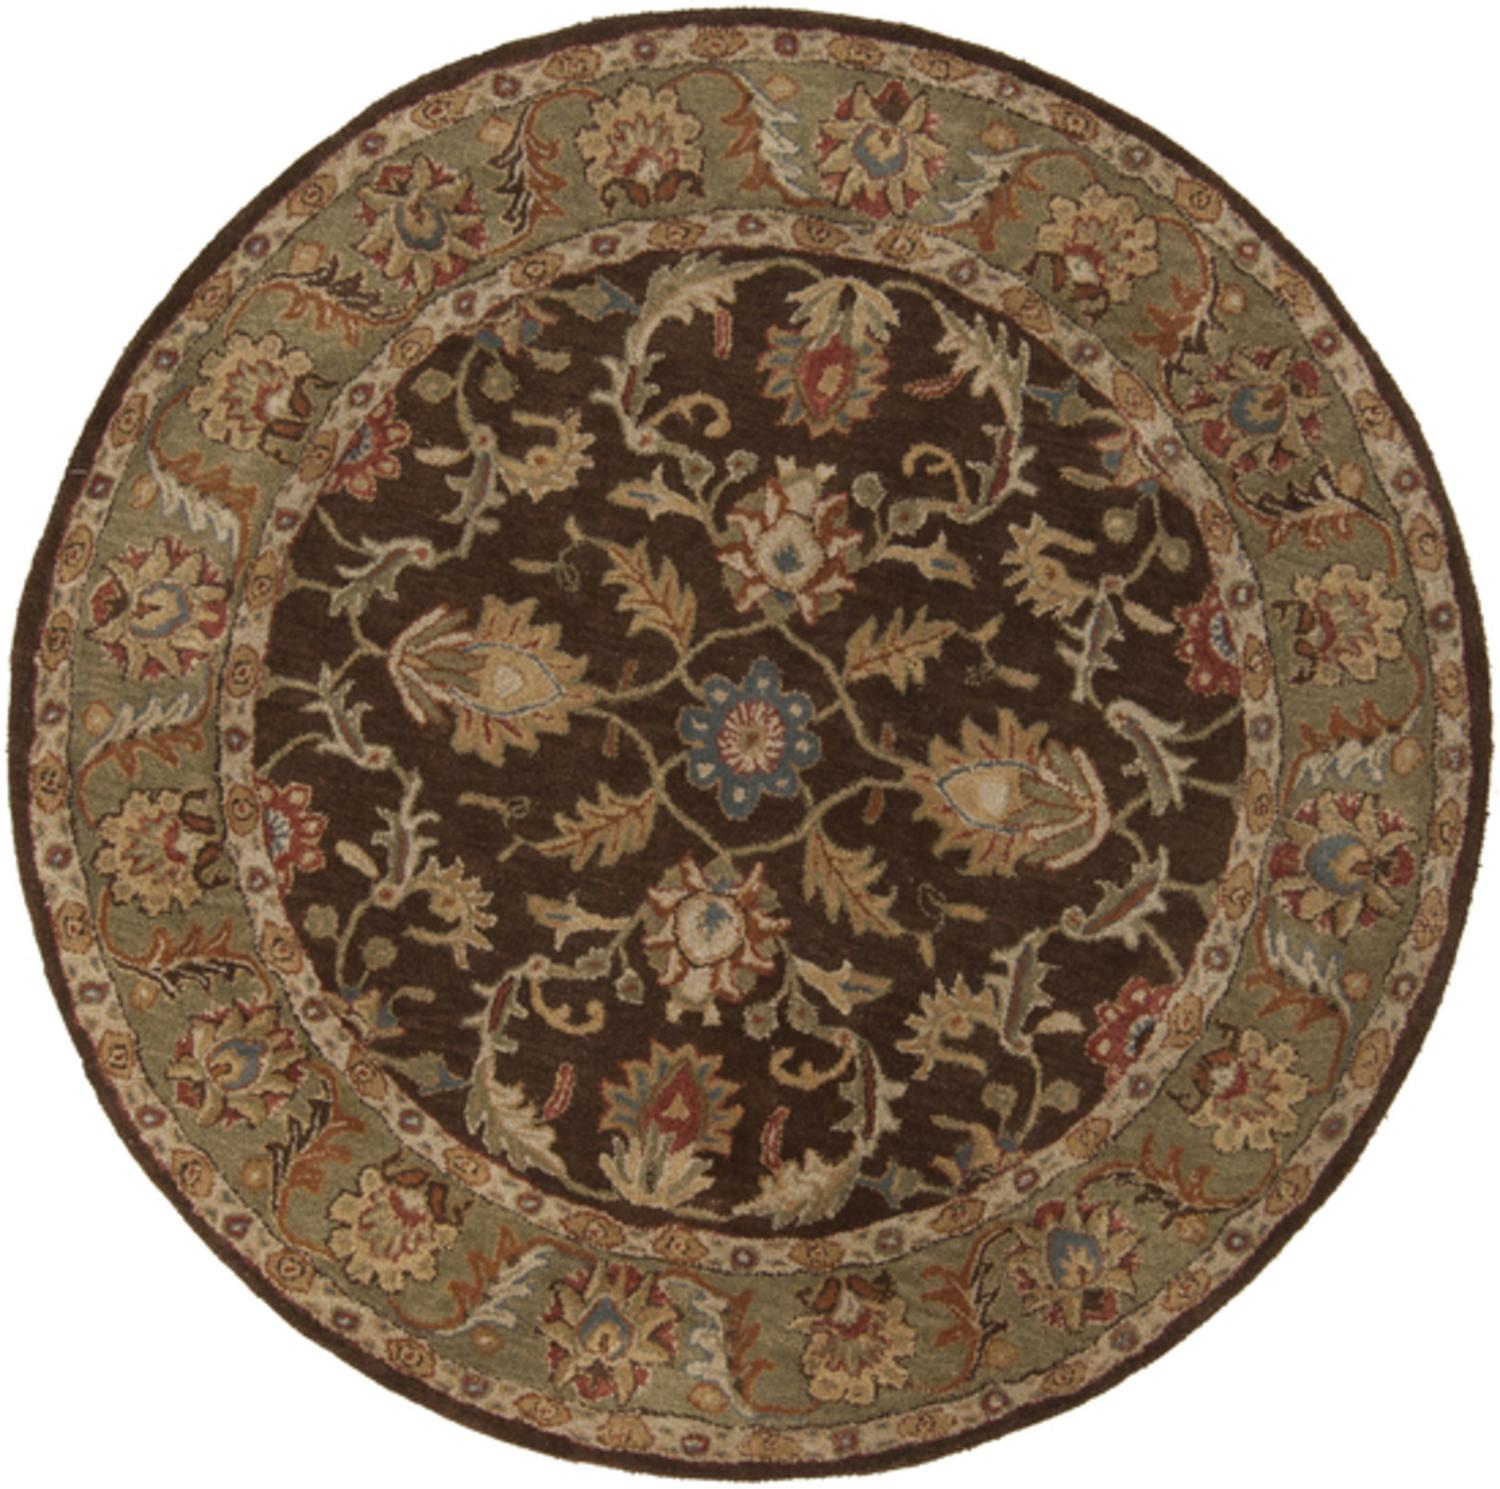 4'  Vespasian Brown and Caper Green Hand Tufted Round Wool Area Throw Rug